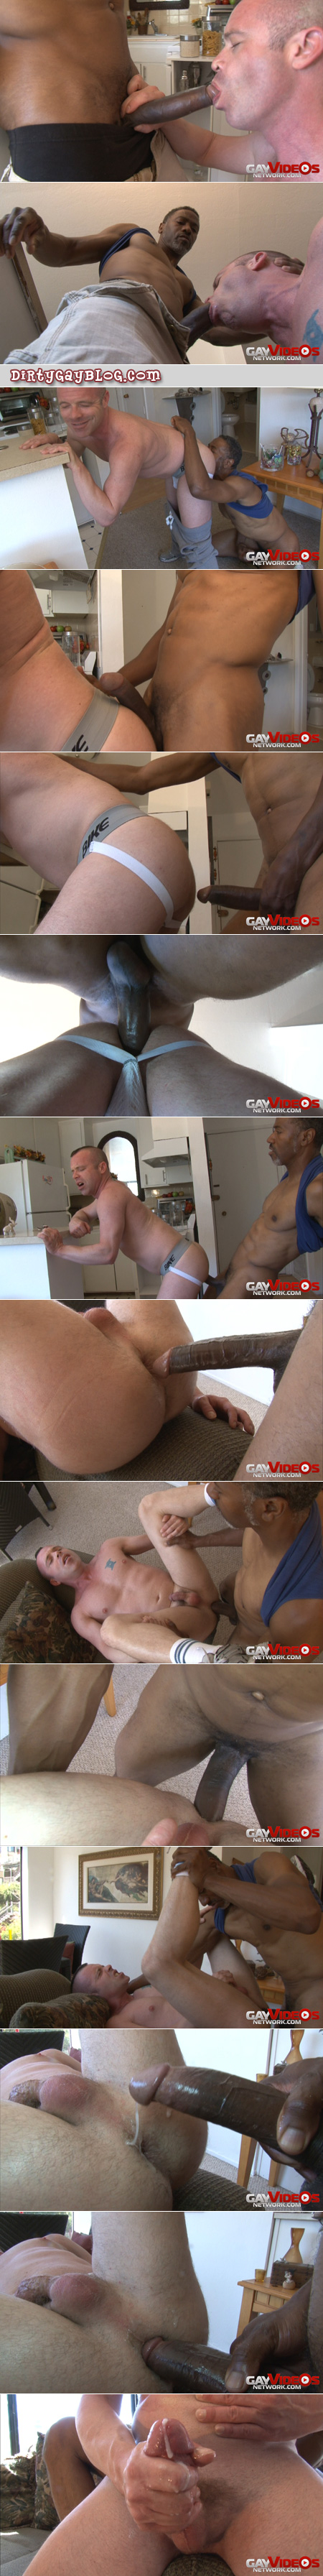 Well-hung black man fucking a little white guy bareback and shoving cum into his ass.